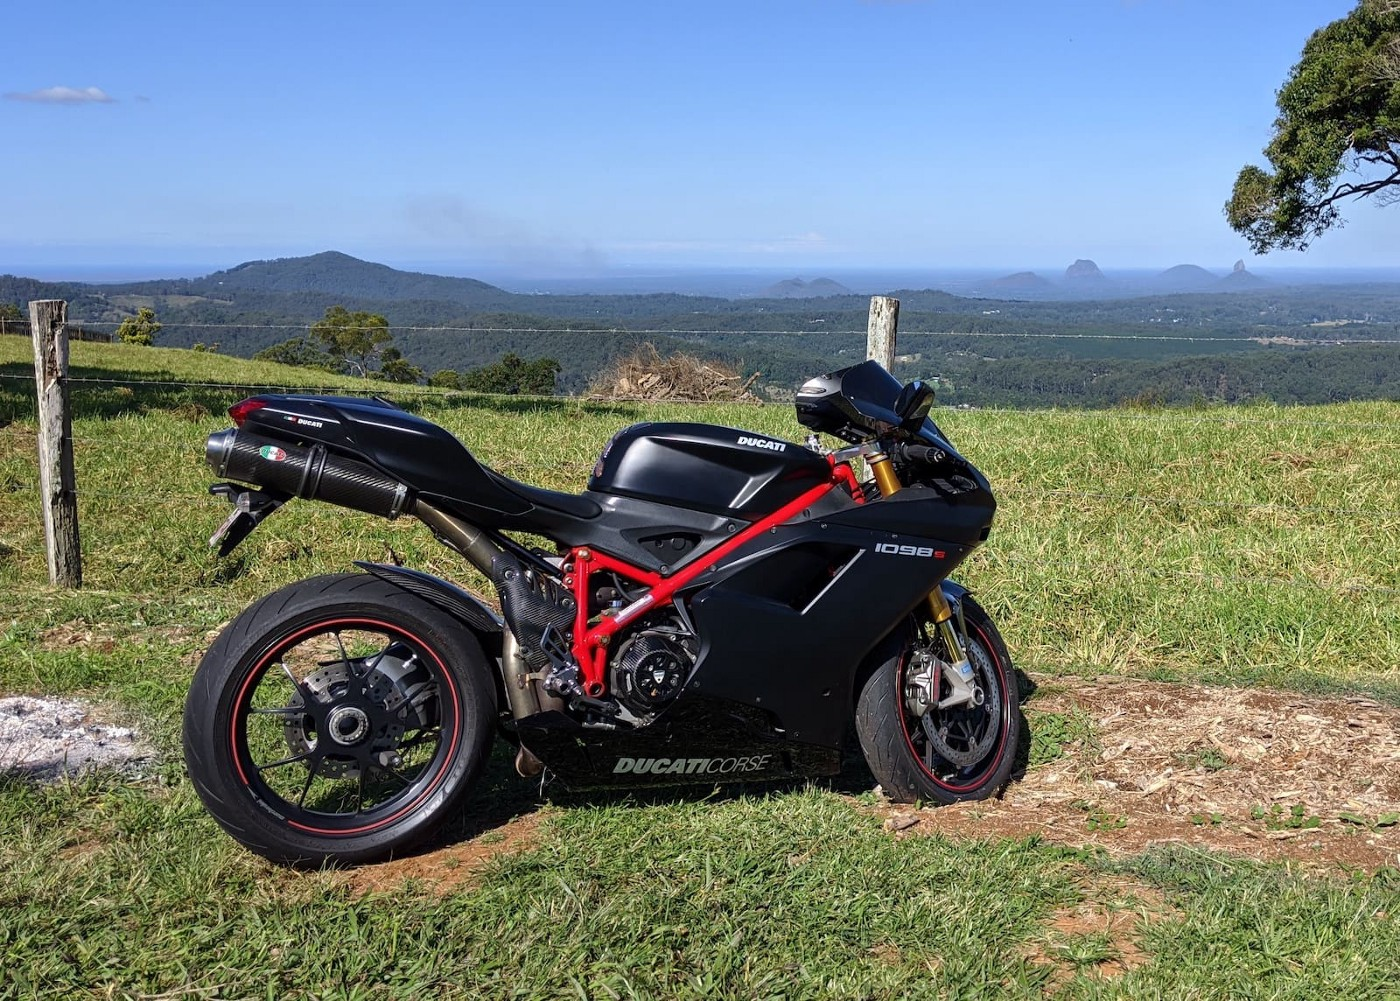 Black Ducati 1098S, Glasshouse mountains, Queensland, Australia